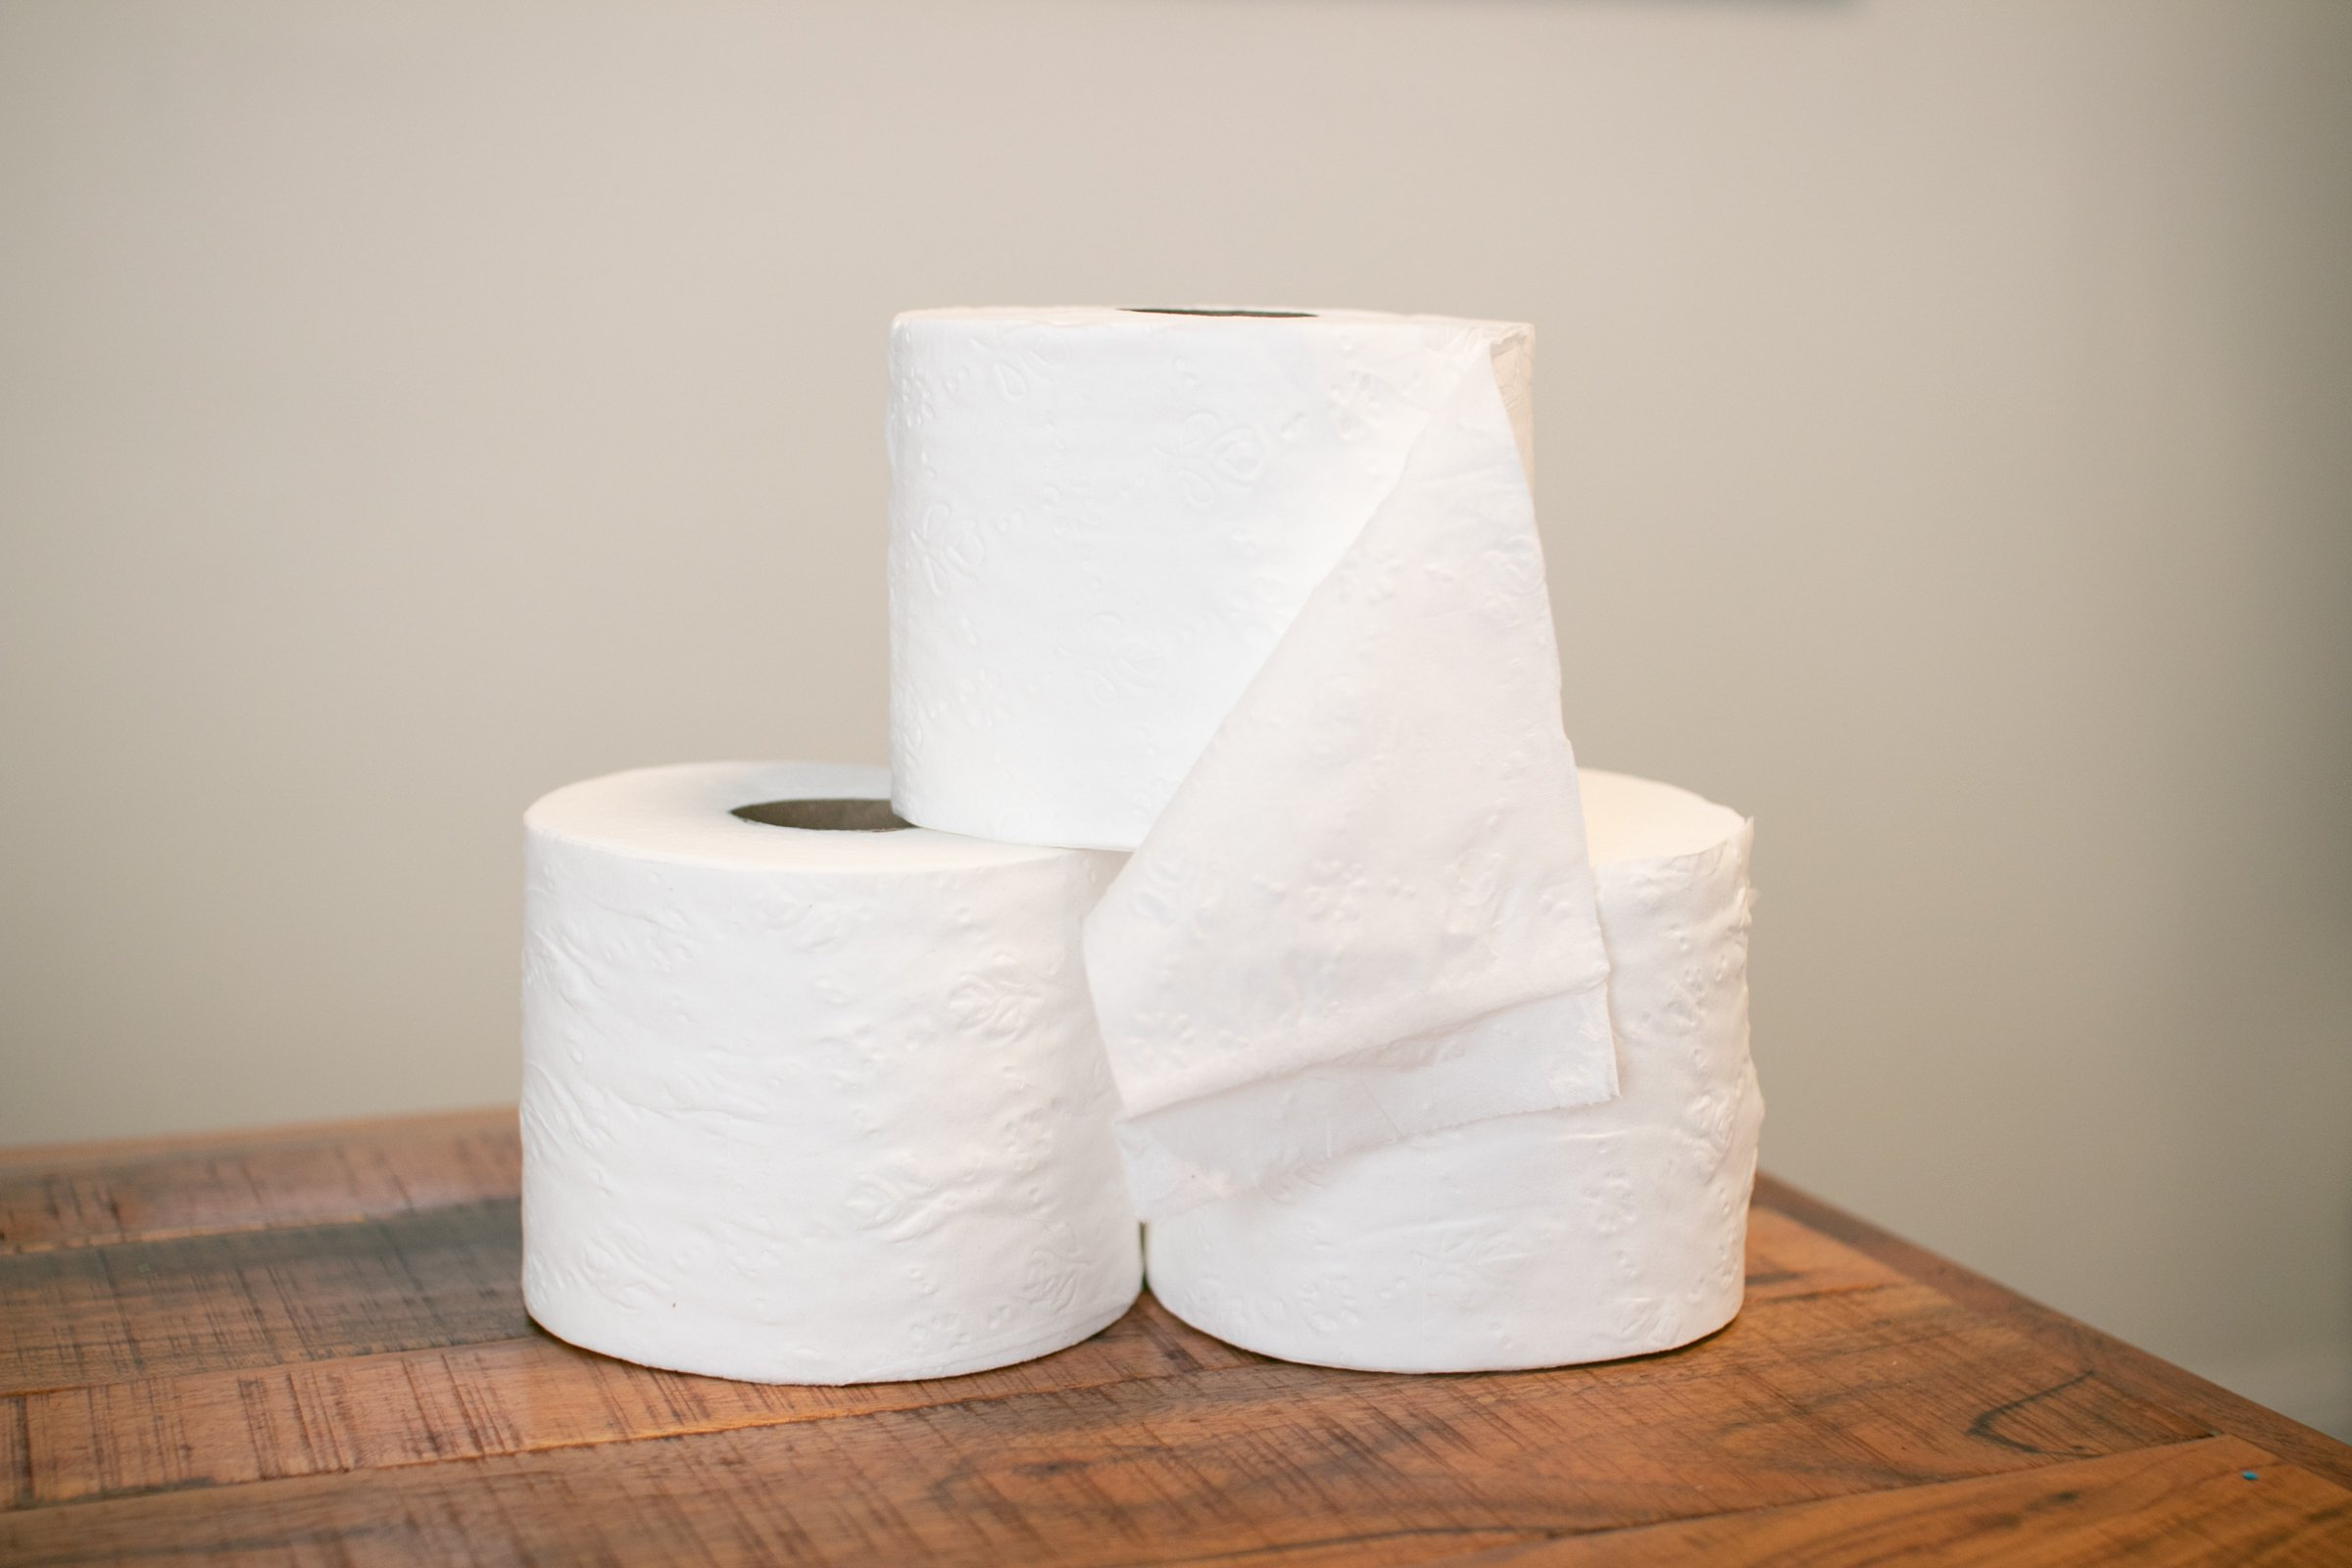 Three Stacked Toilet Paper Rolls On Wooden Table